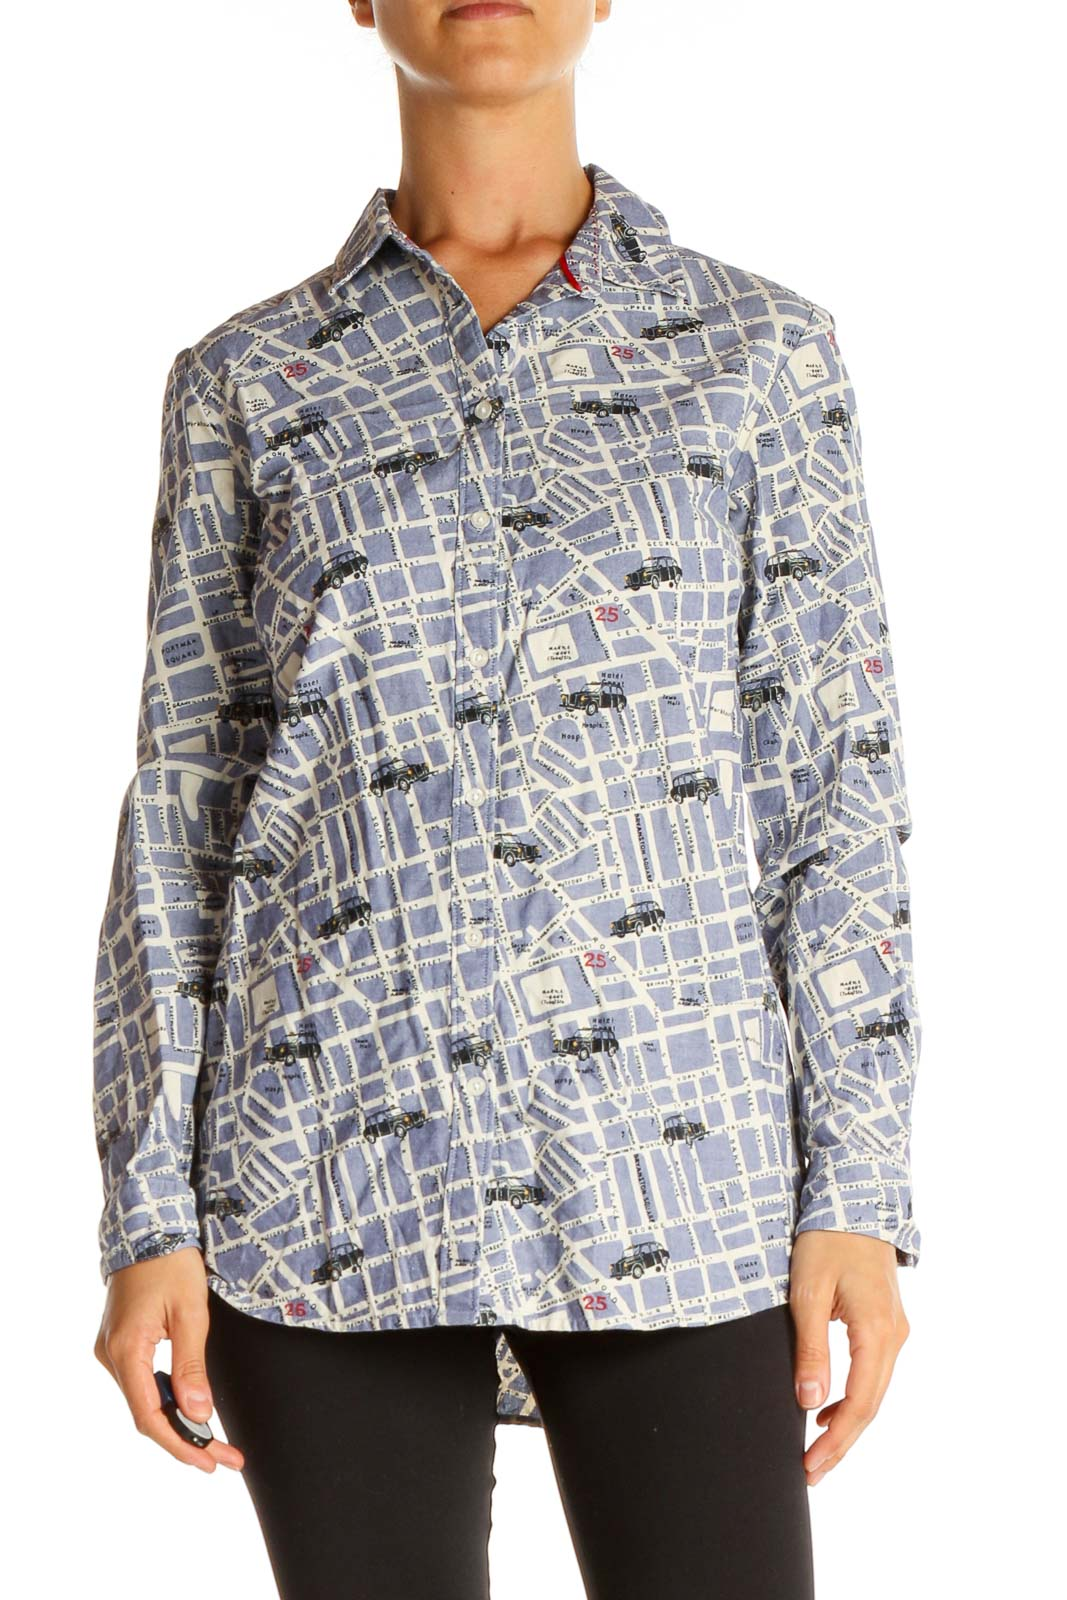 Gray Graphic Print All Day Wear Shirt Front